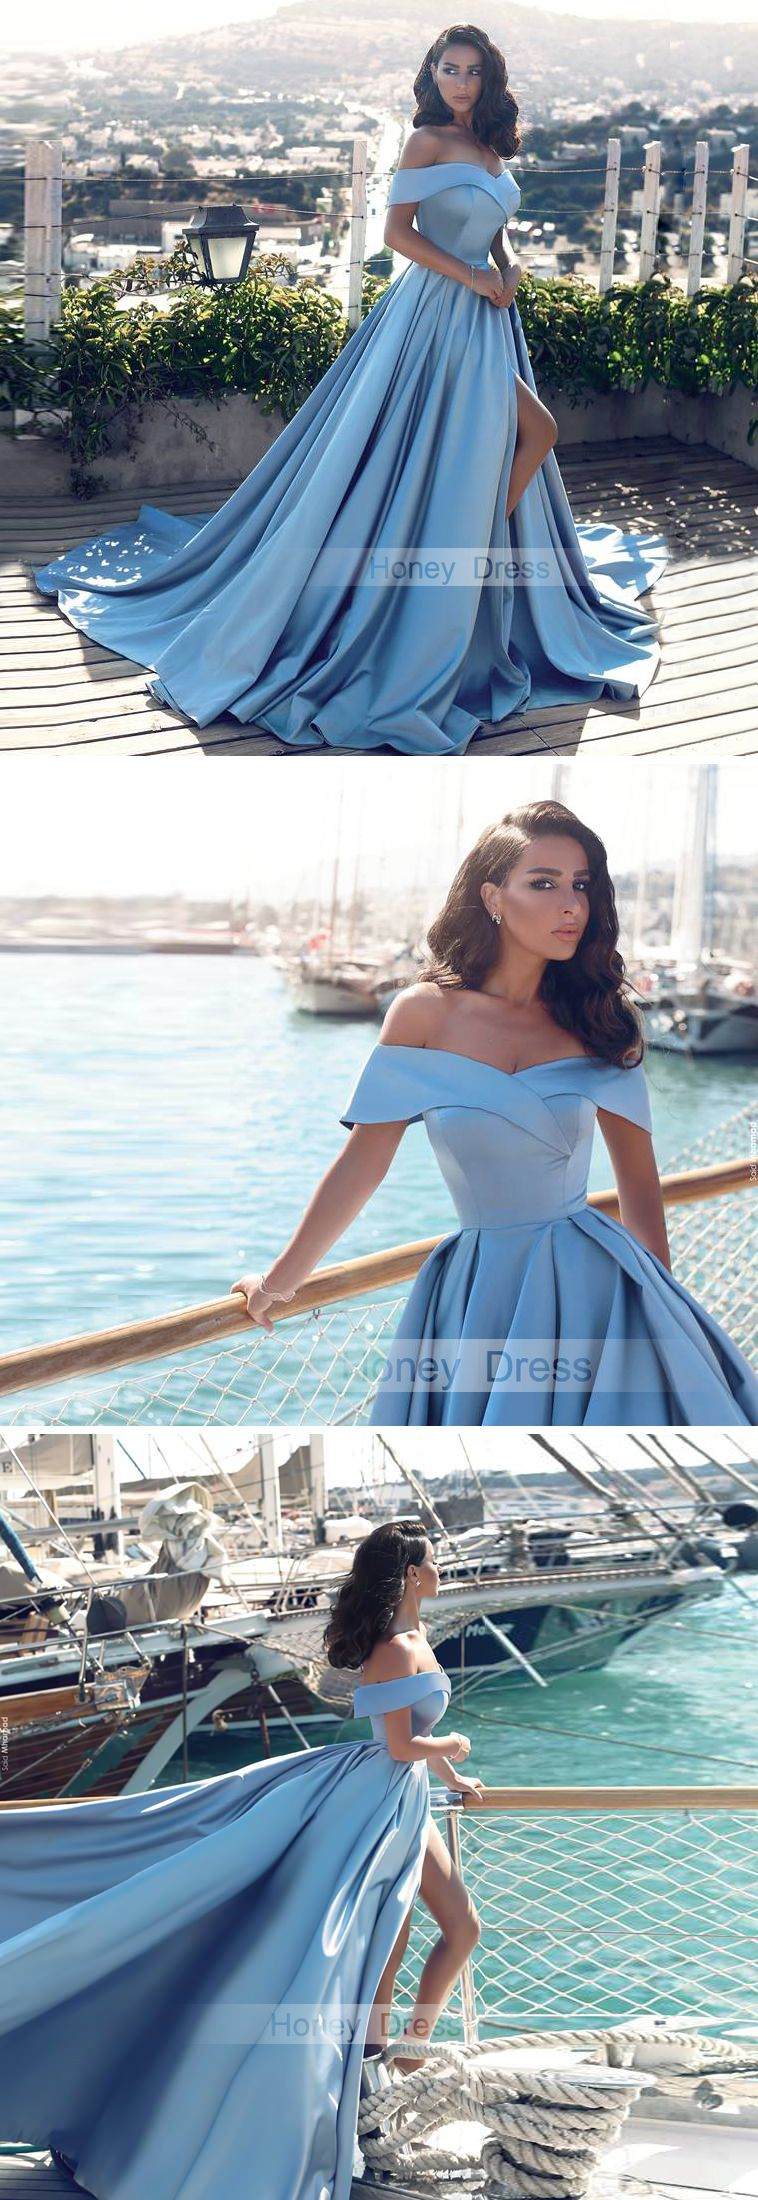 00c91219d21 Glamorous Baby Blue Satin Prom Dress, Off-the-shoulder A-line Long Formal  Dress With Slit